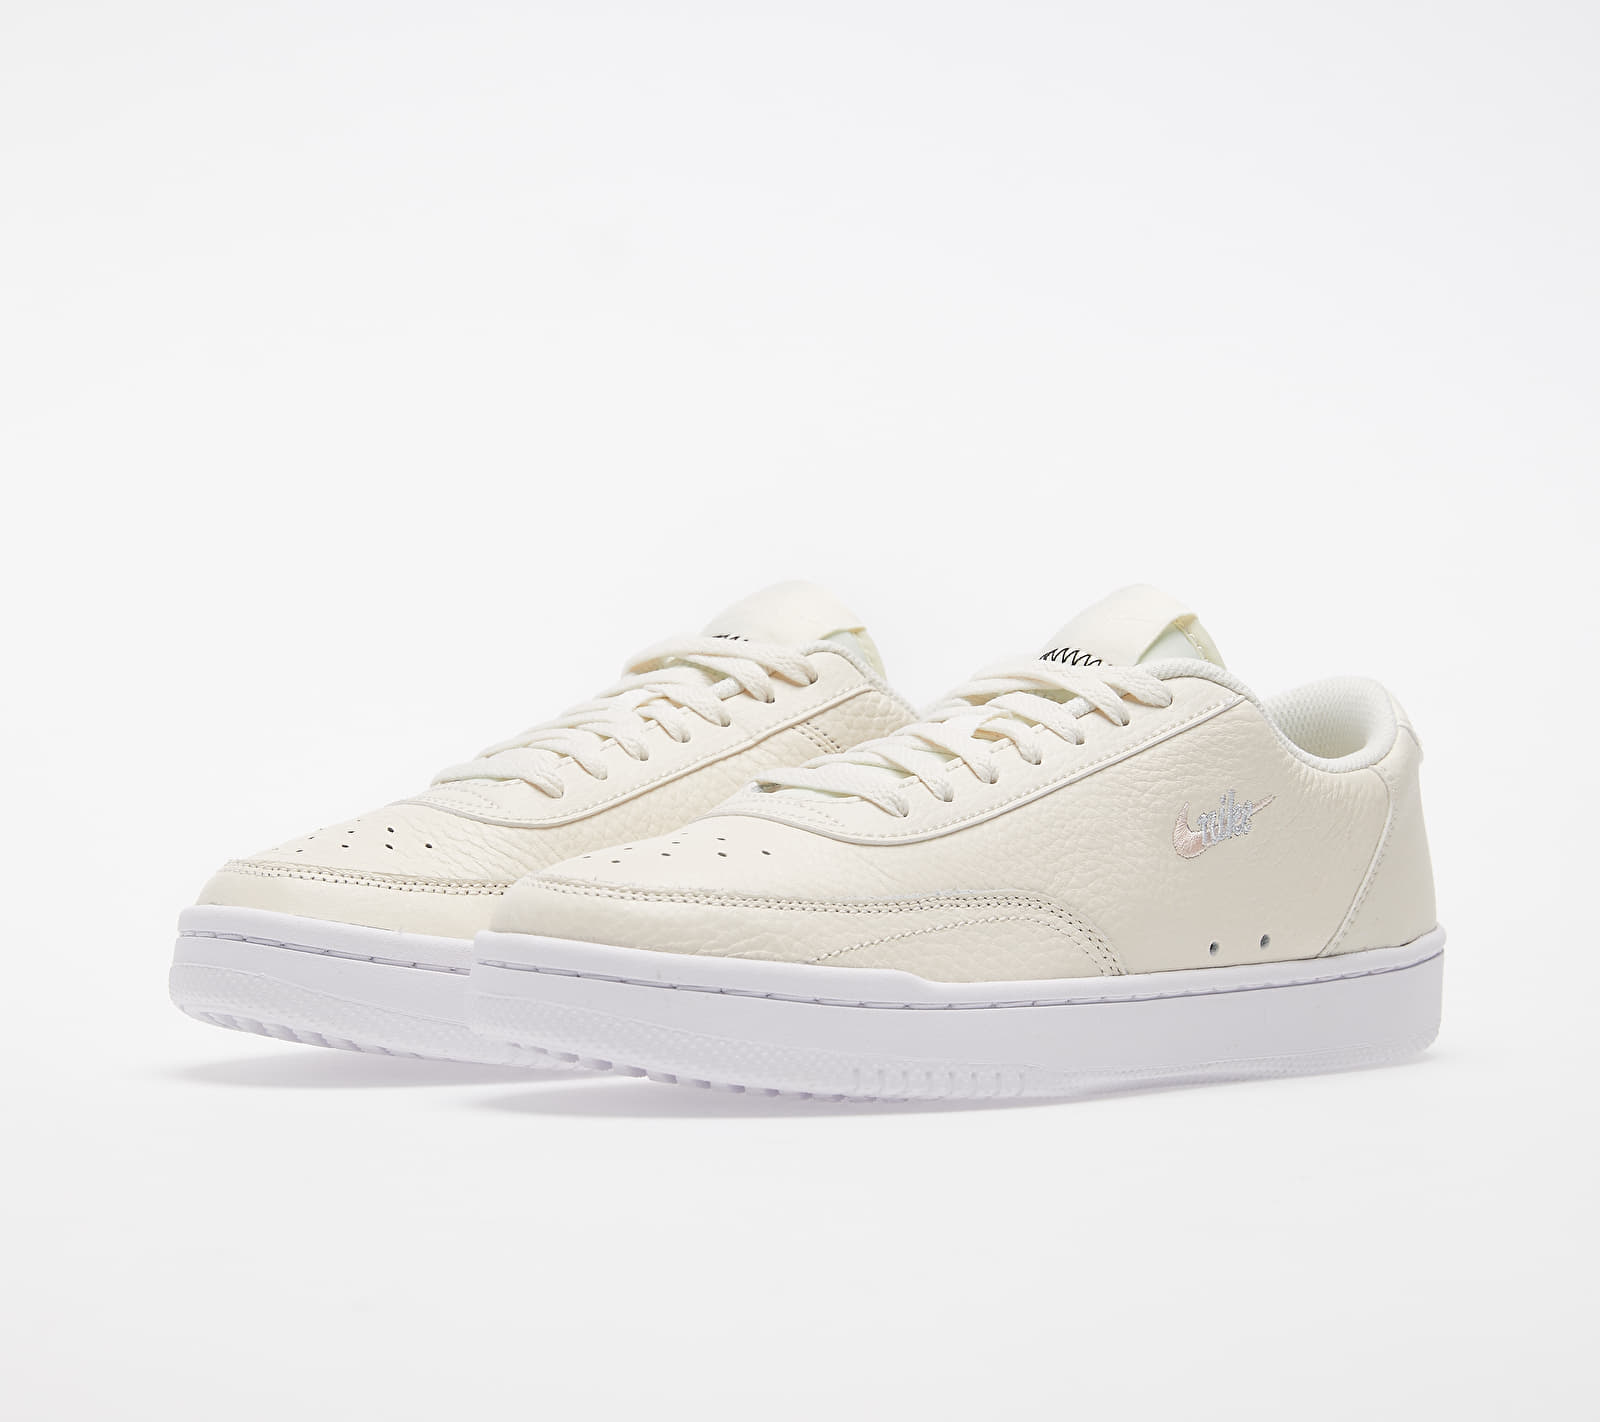 Nike Wmns Court Vintage Premium Pale Ivory/ Washed Coral-Aura, Brown